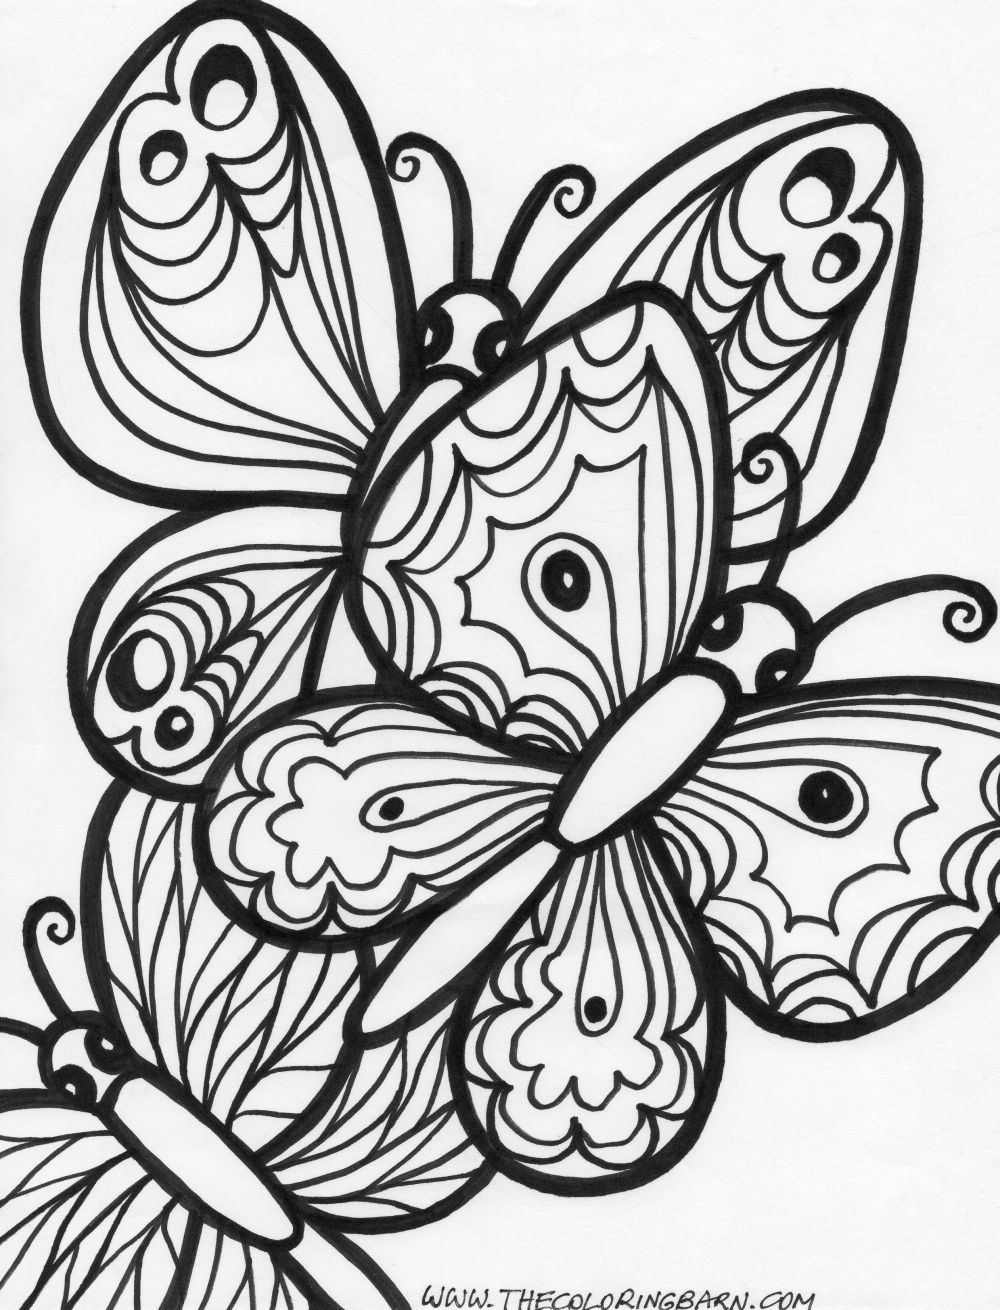 coloring pages for adults | Only Coloring Pages